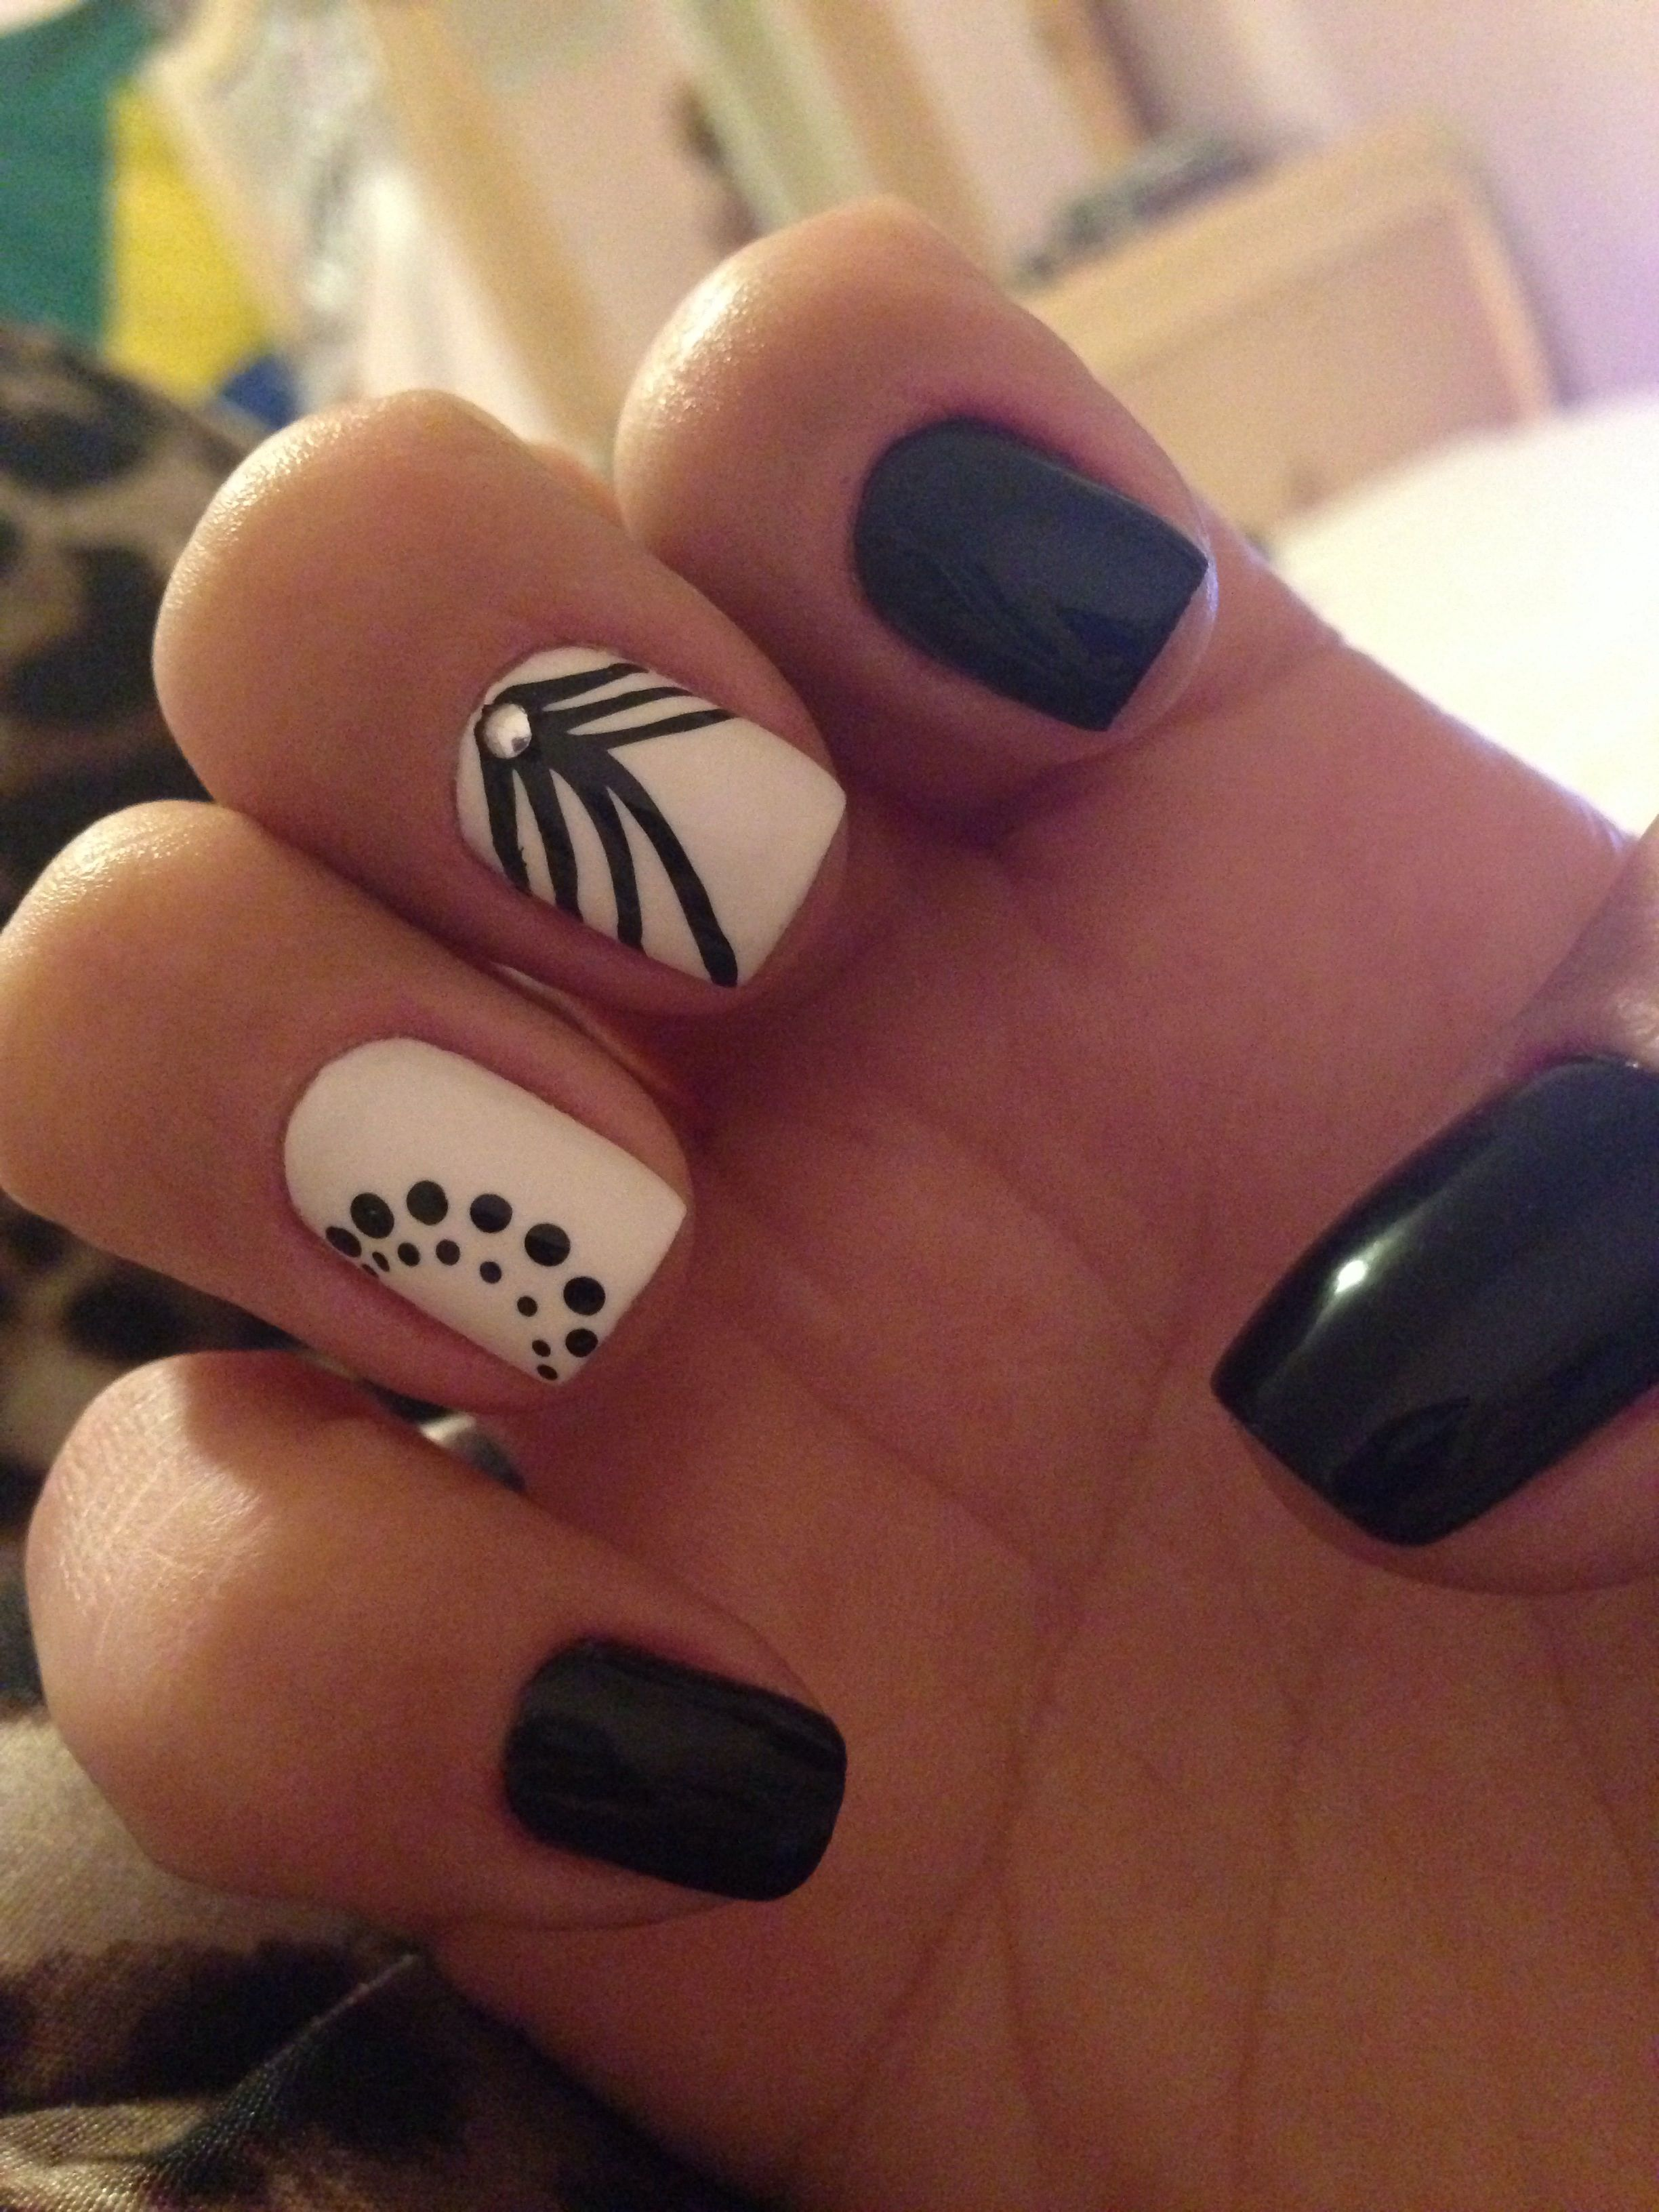 Black and white nails | Nails | Pinterest | Diseños de uñas ...